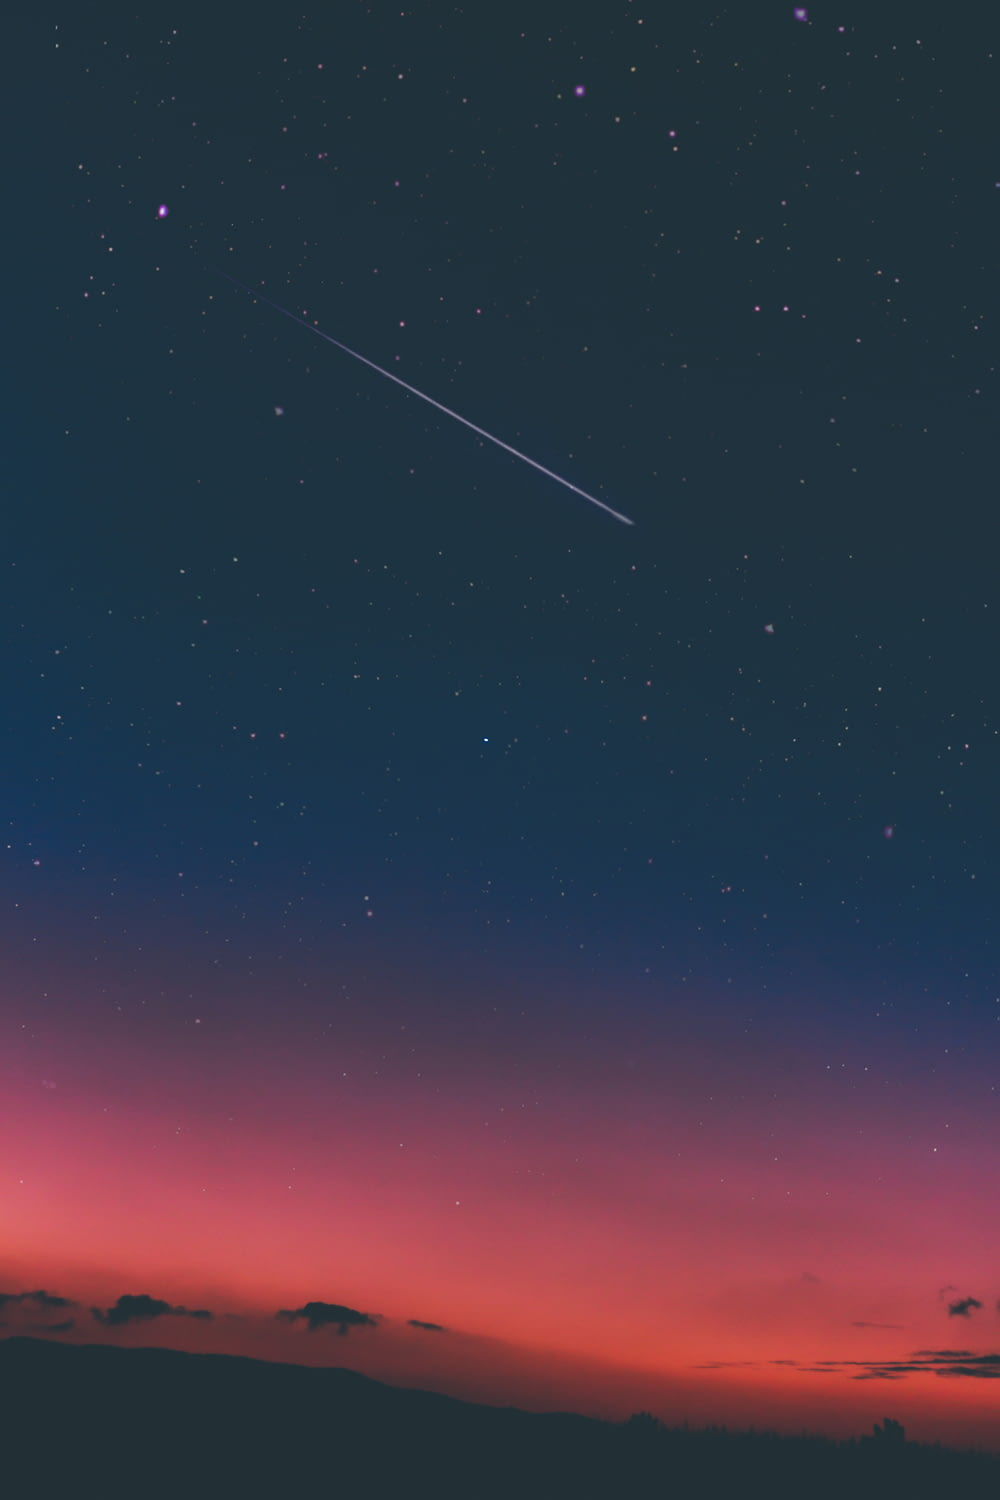 shooting star in night sky